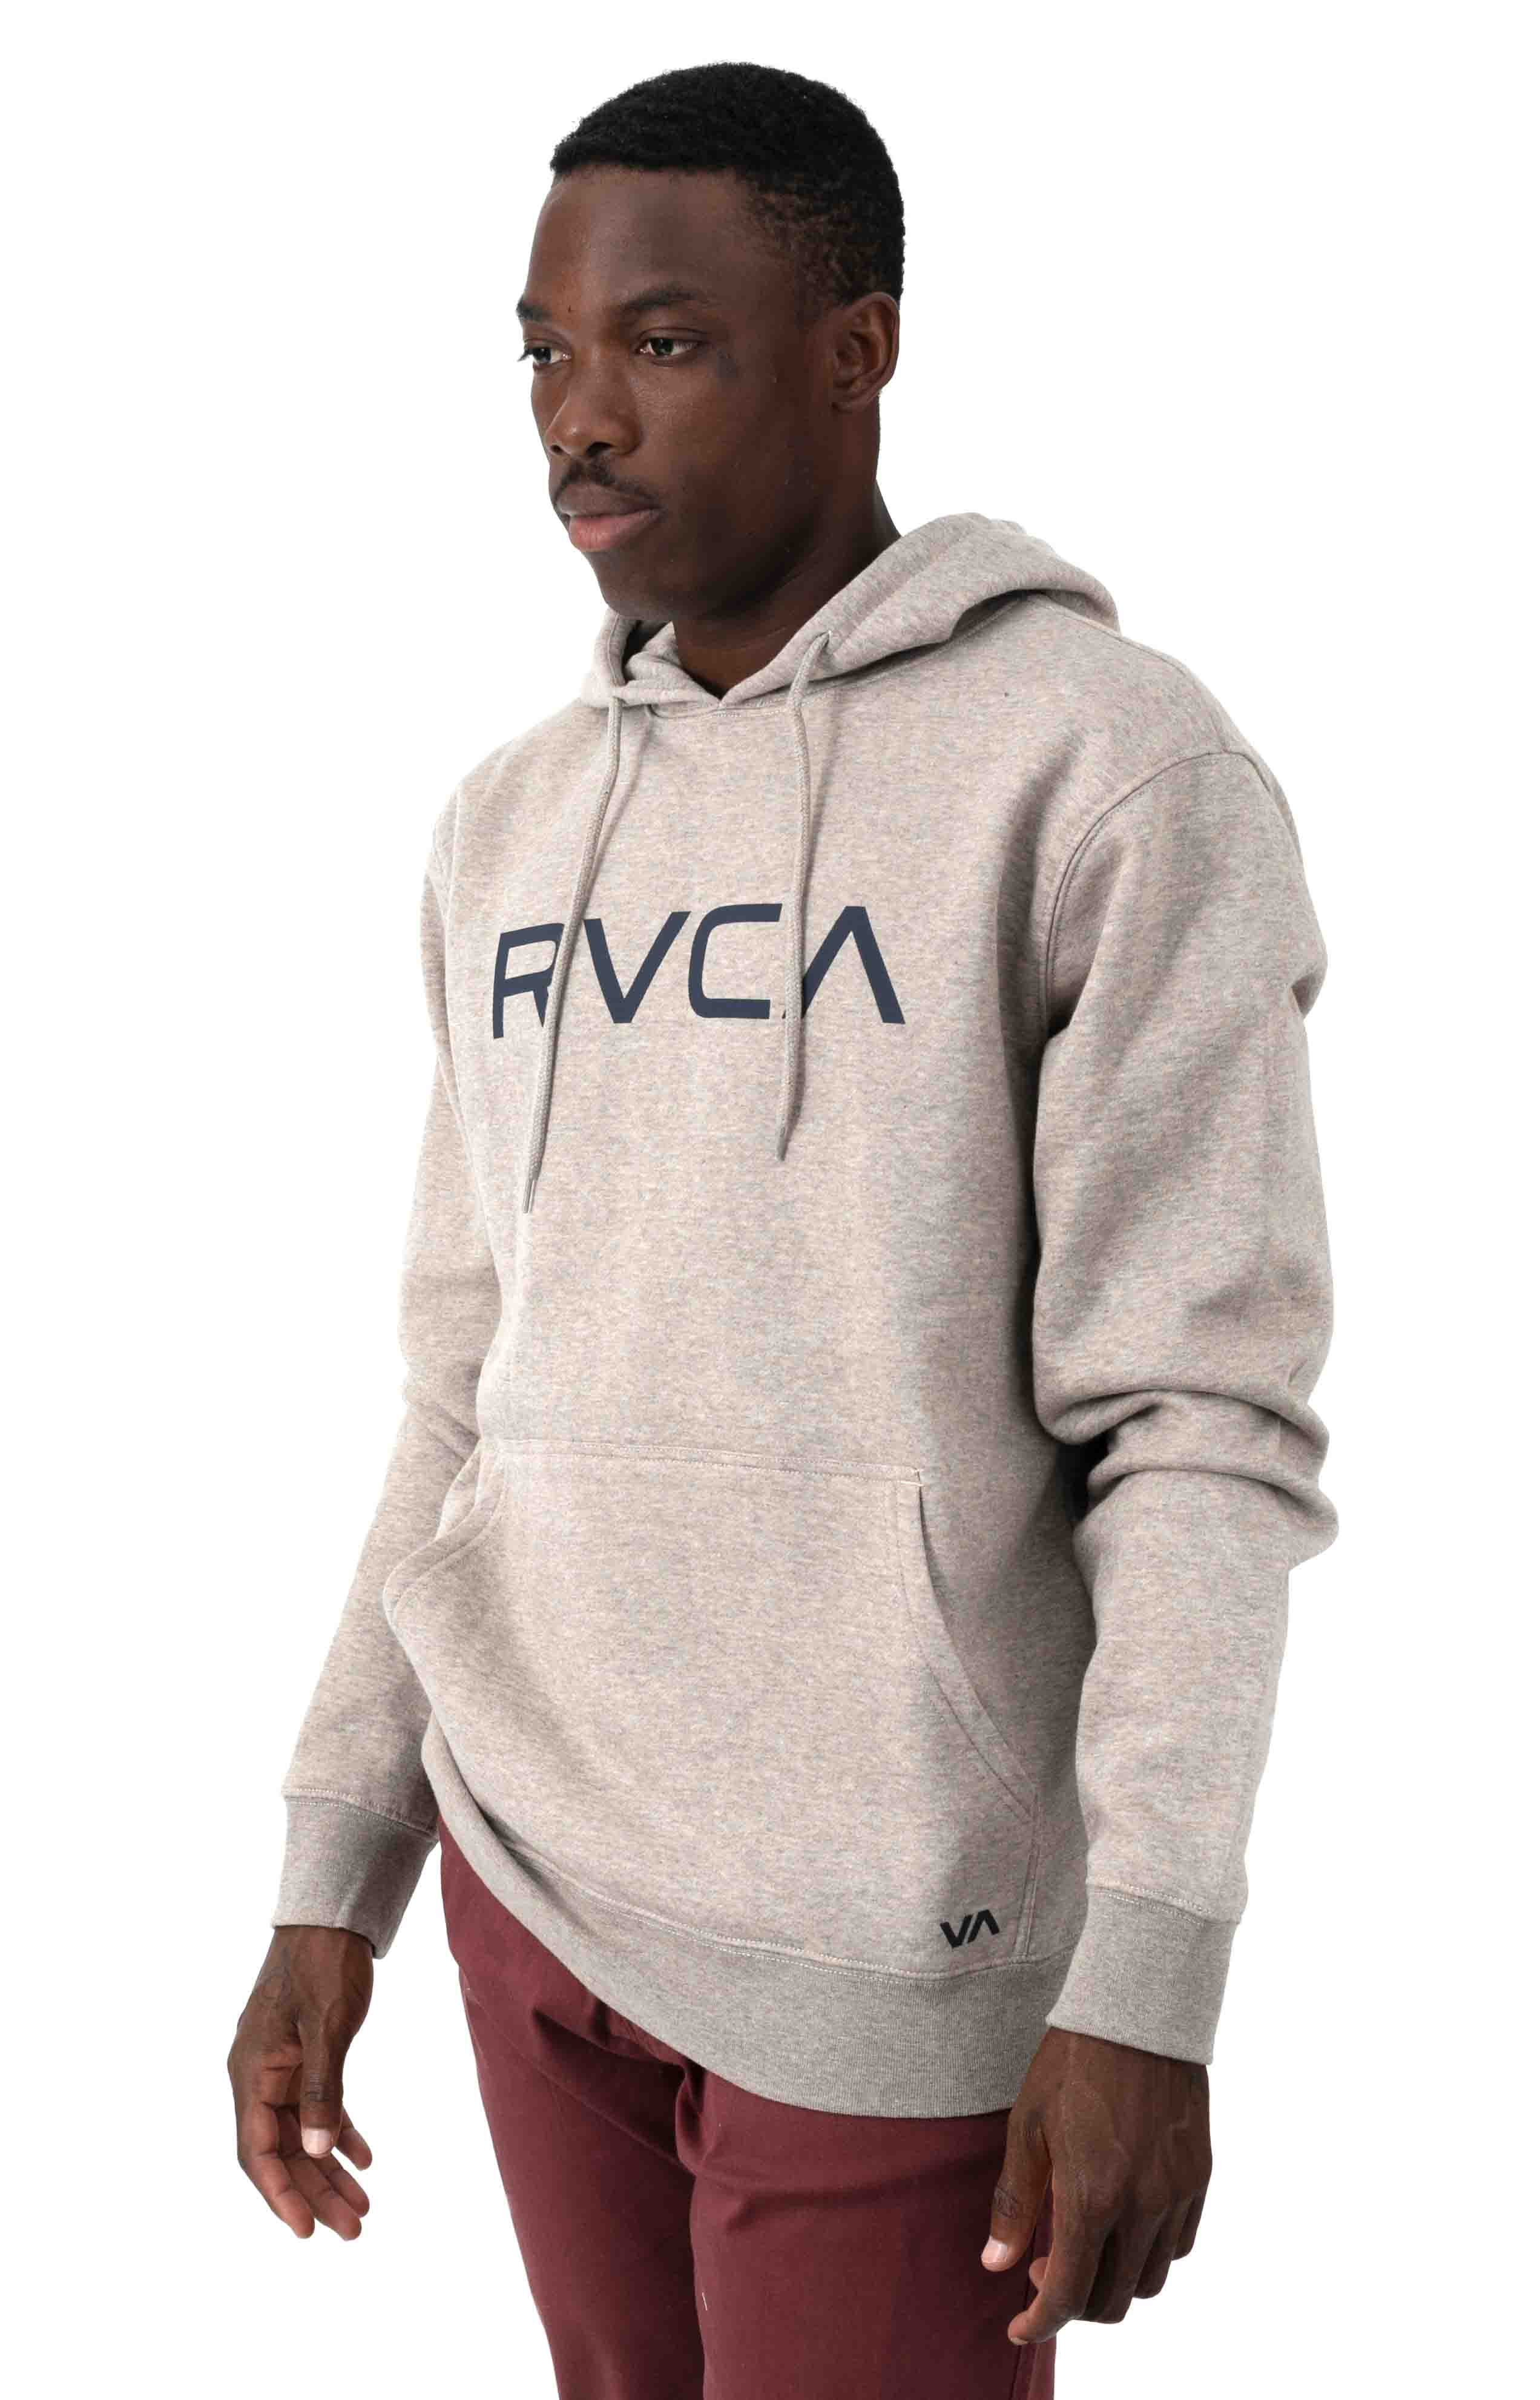 Big RVCA Pullover Hoodie - Khaki Heather  2